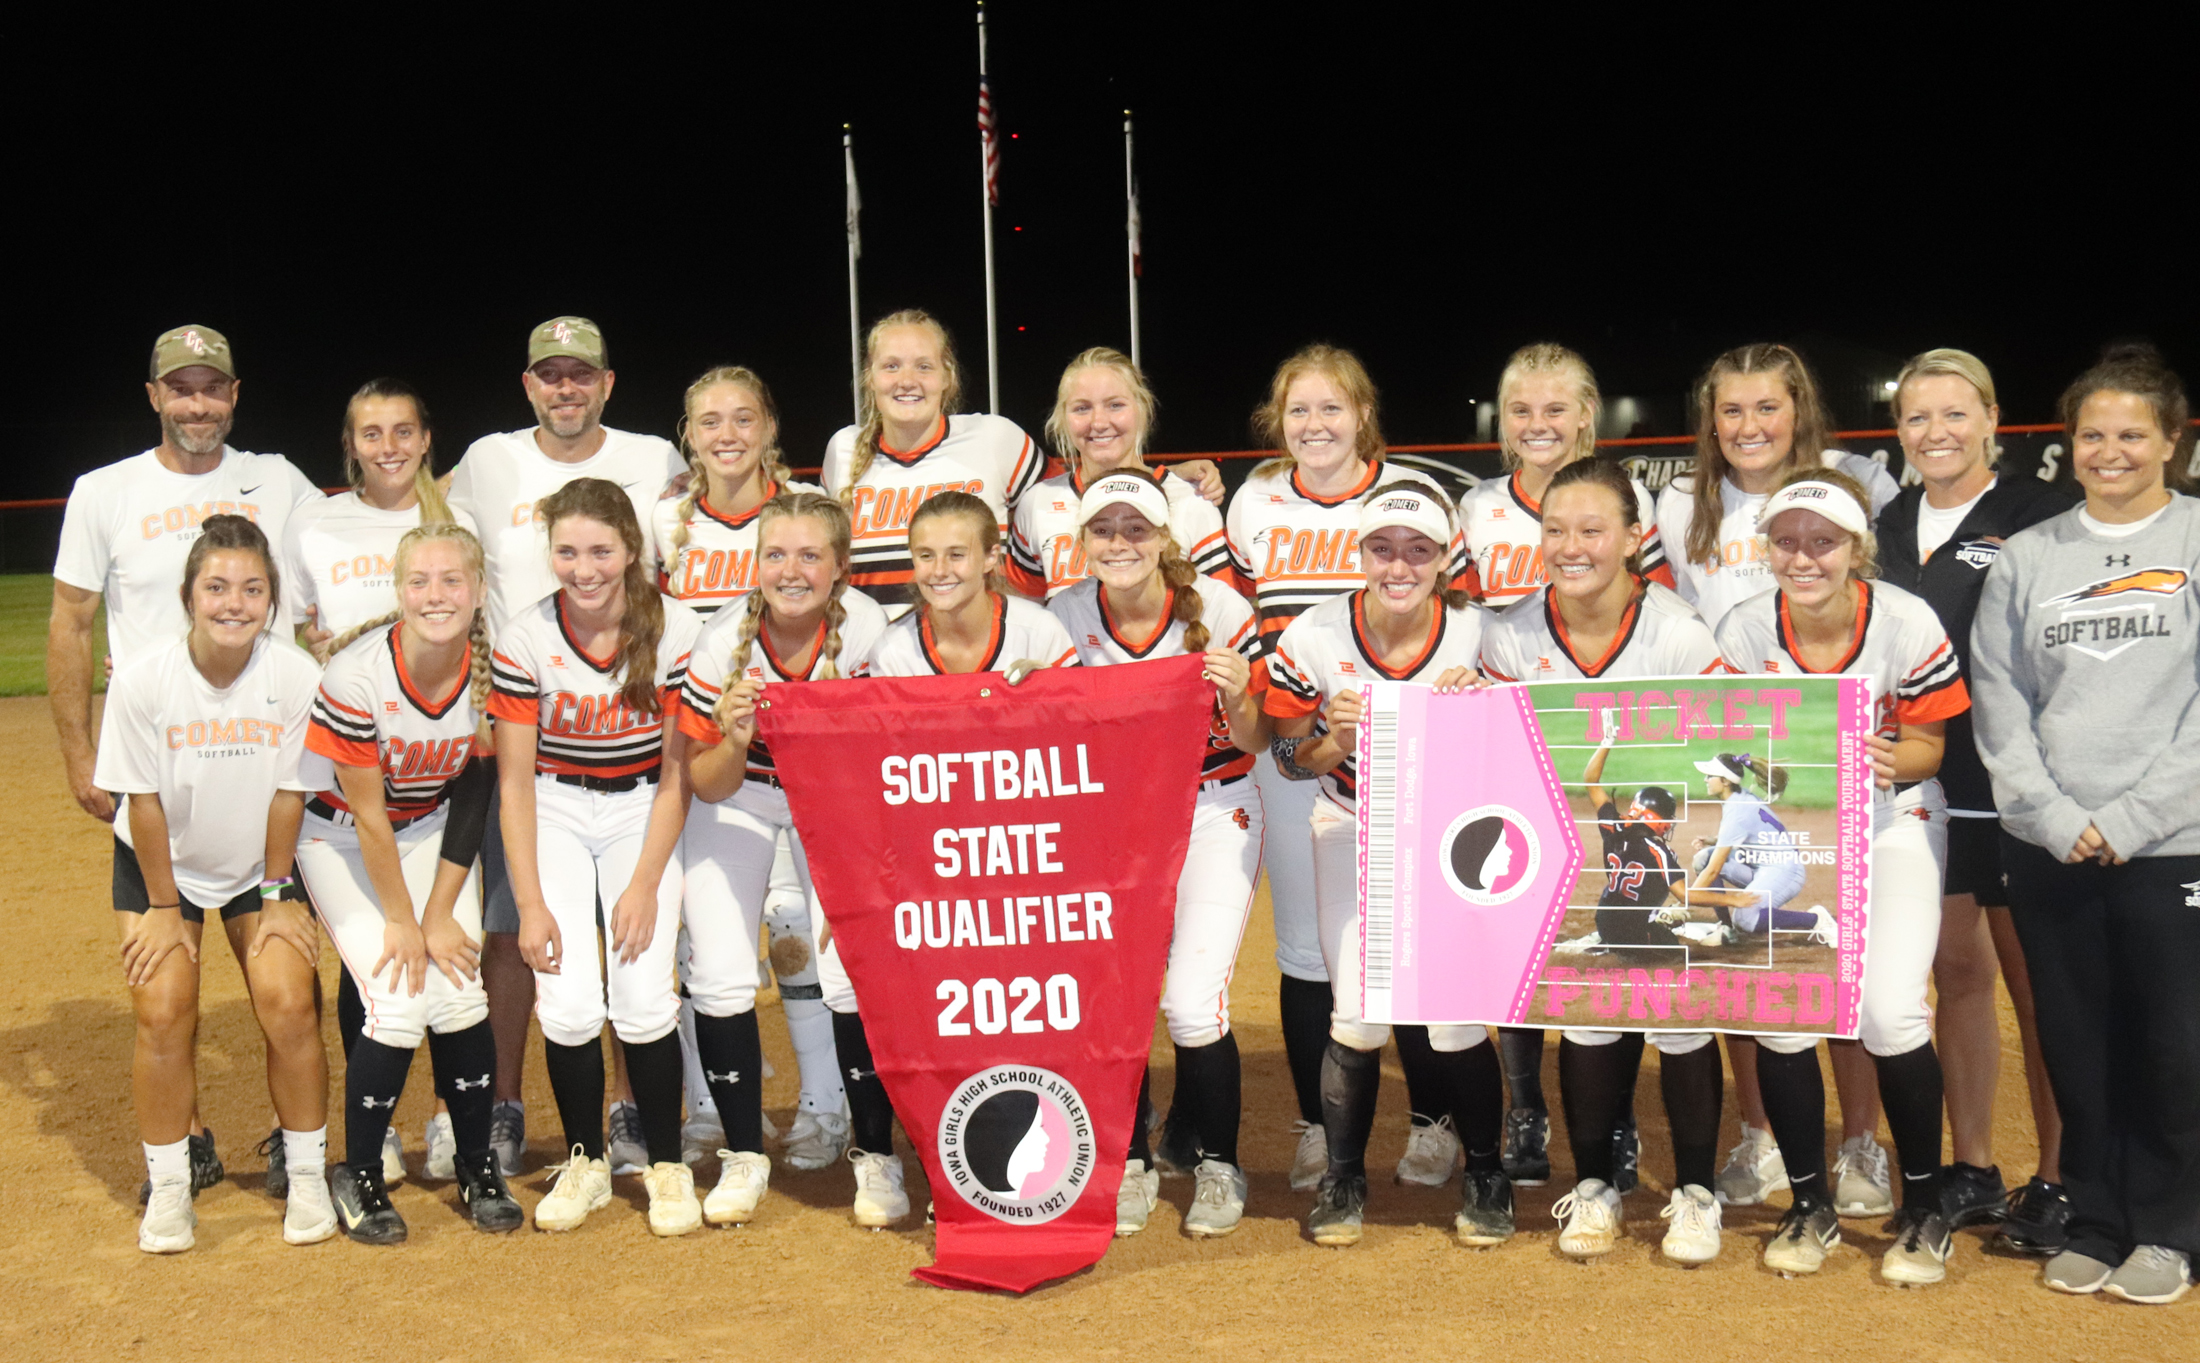 Comets defeat Mohawks 10-6 for regional title, advance to state for 5th-straight year